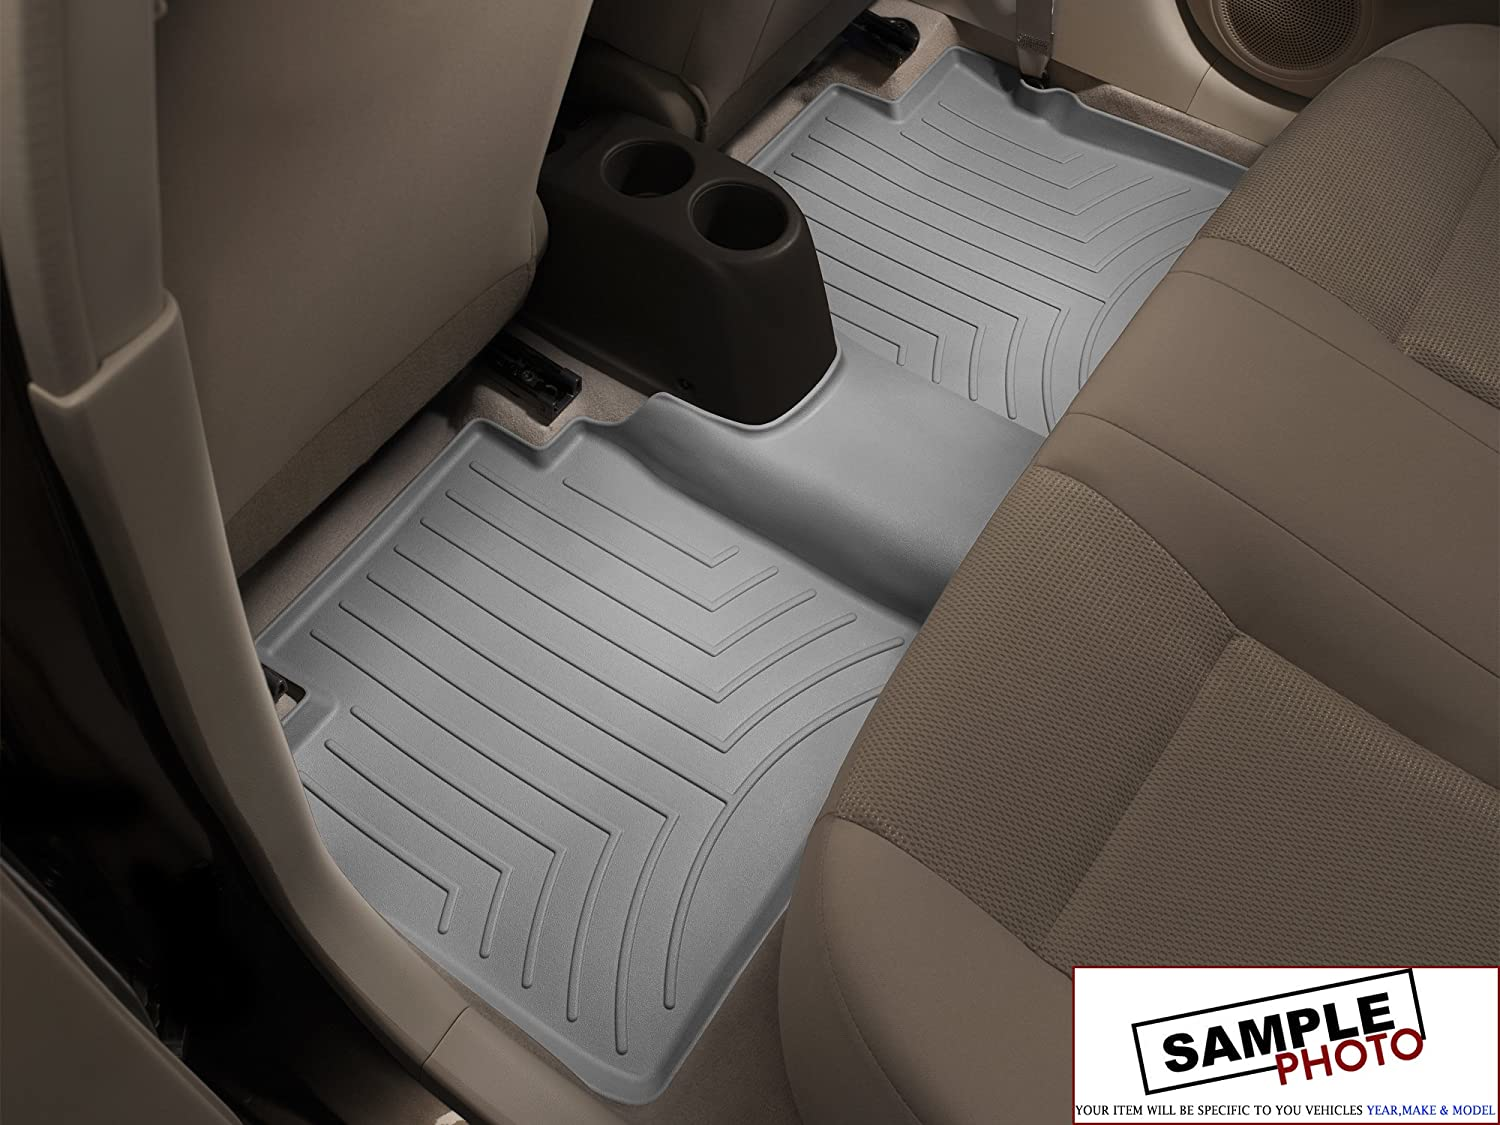 2014 Fiat 500 Abarth Cabrio Gray Weathertech Rear FloorLiner in Grey Rear FloorLiner abarth tales толстовка